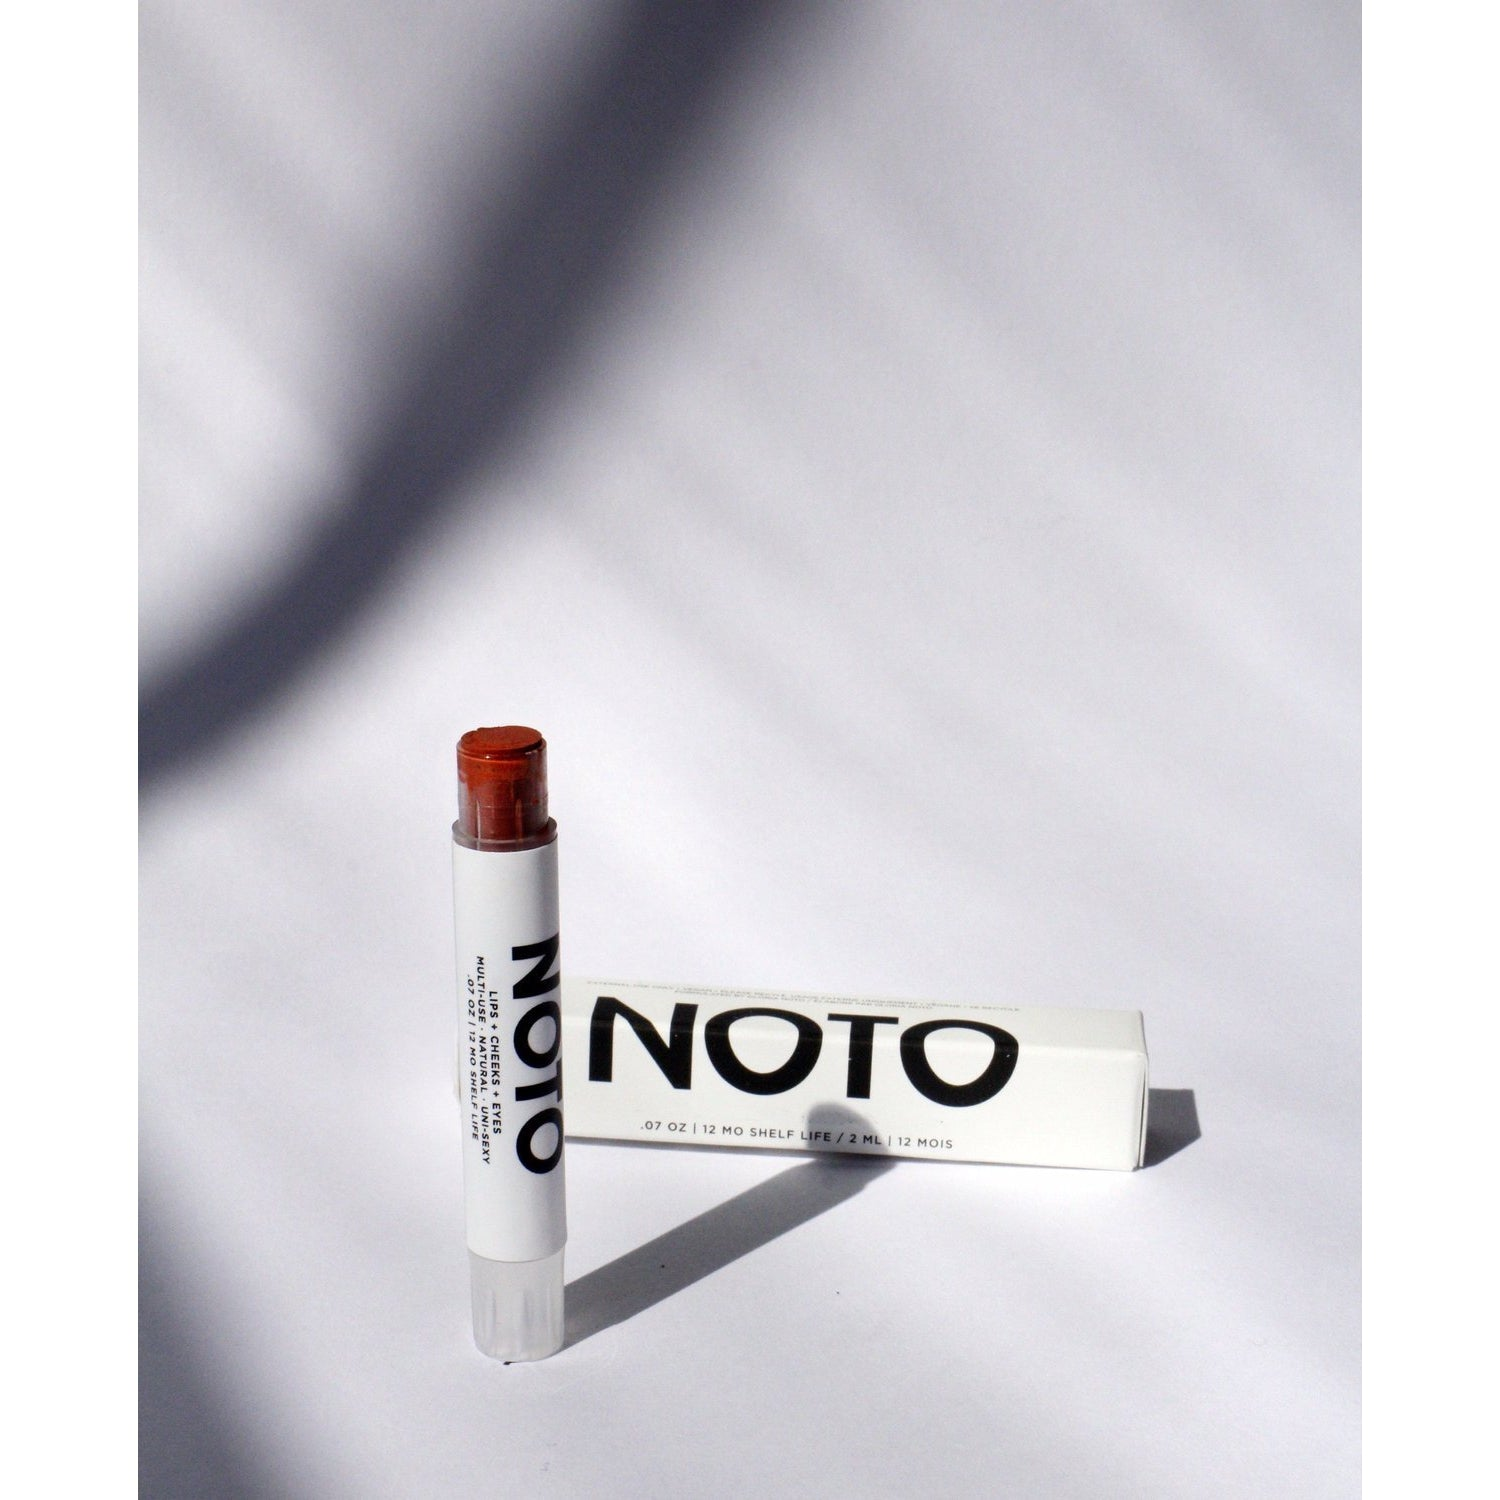 noto lip and cheek stain stick next to box container